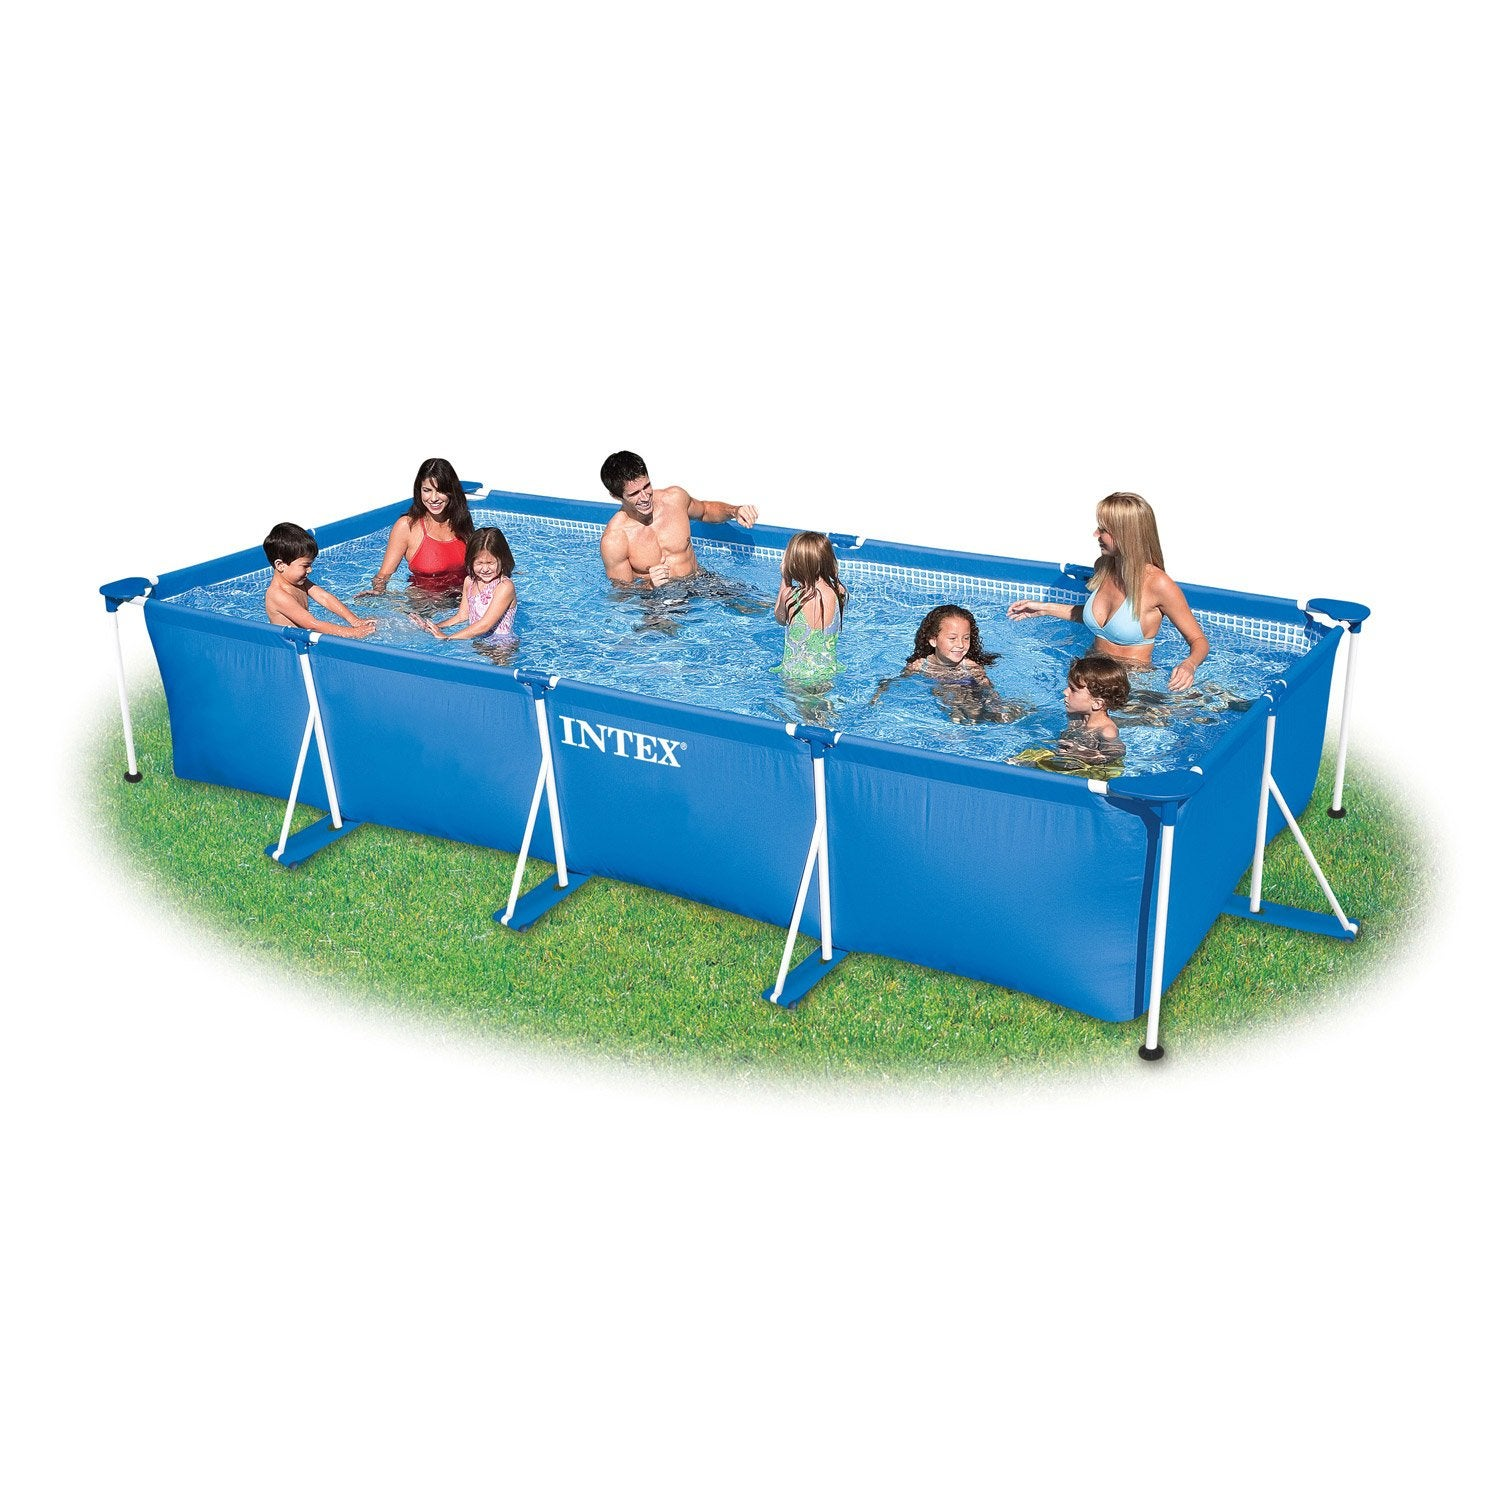 Piscine hors sol autoportante tubulaire intex l x l for Piscine hors sol perpignan